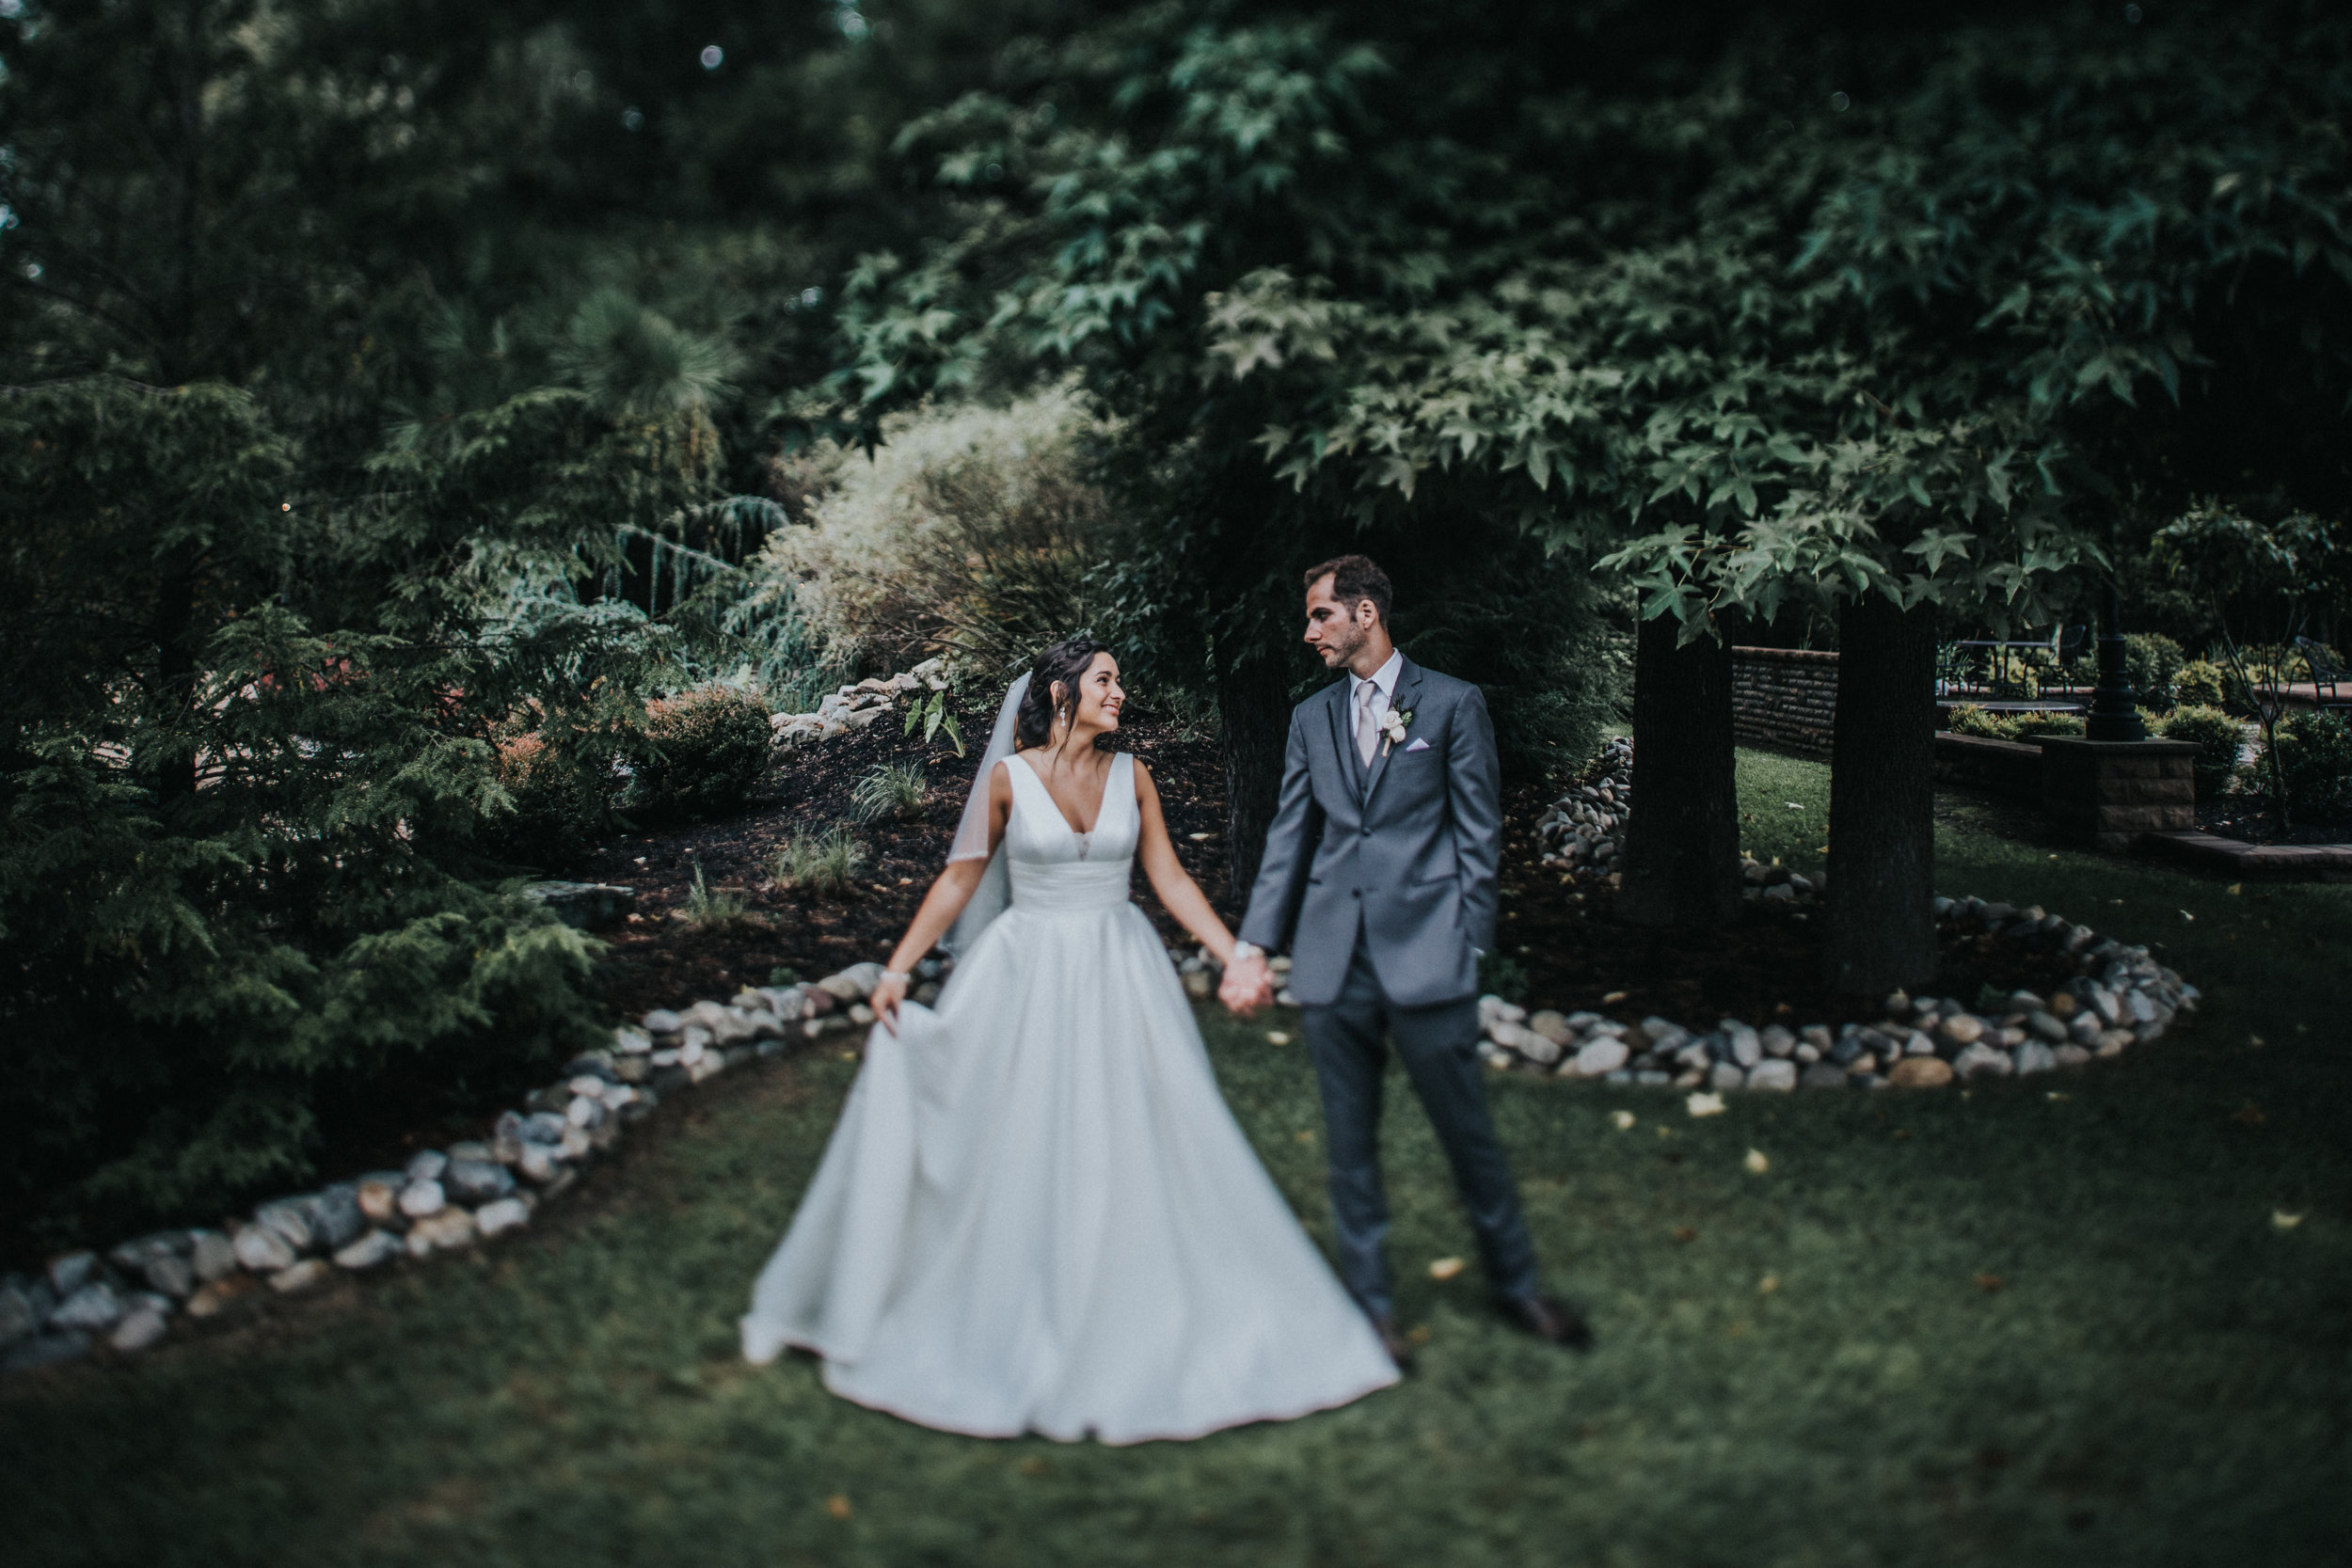 New-Jersey-Wedding-Photographer-Jenna-Lynn-Photography-Wedding-Brigalias-Ashley&Sal-Bride&Groom-32.jpg